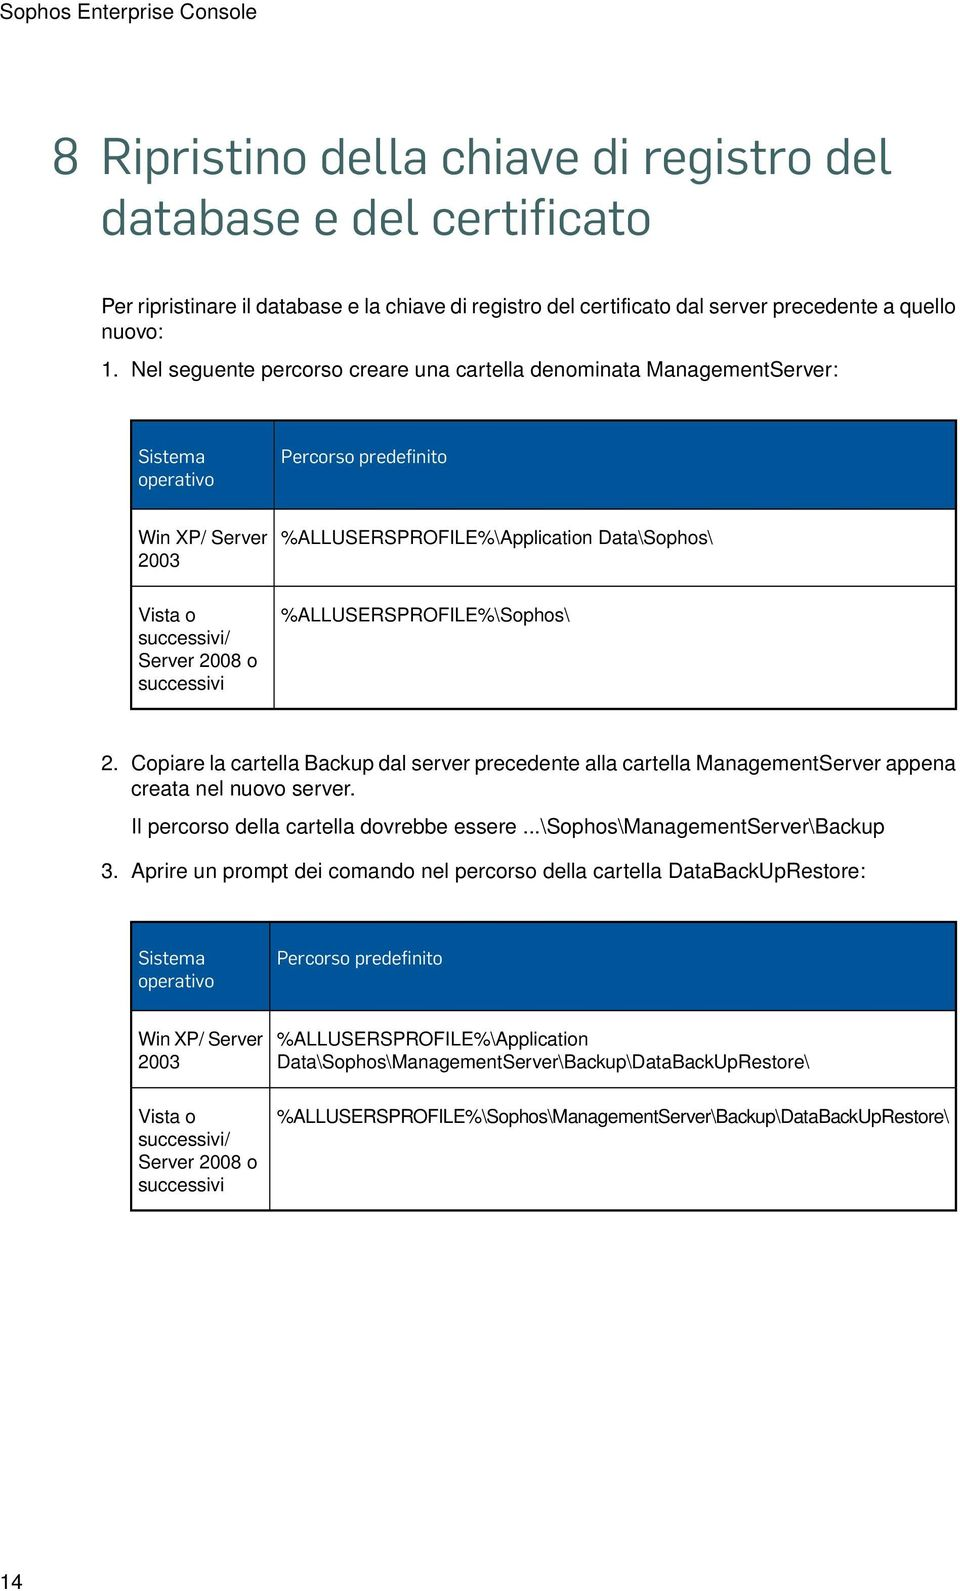 Nel seguente percorso creare una cartella denominata ManagementServer: Sistema operativo Win XP/ Server 2003 %ALLUSERSPROFILE%\Application Data\Sophos\ Vista o successivi/ Server 2008 o successivi